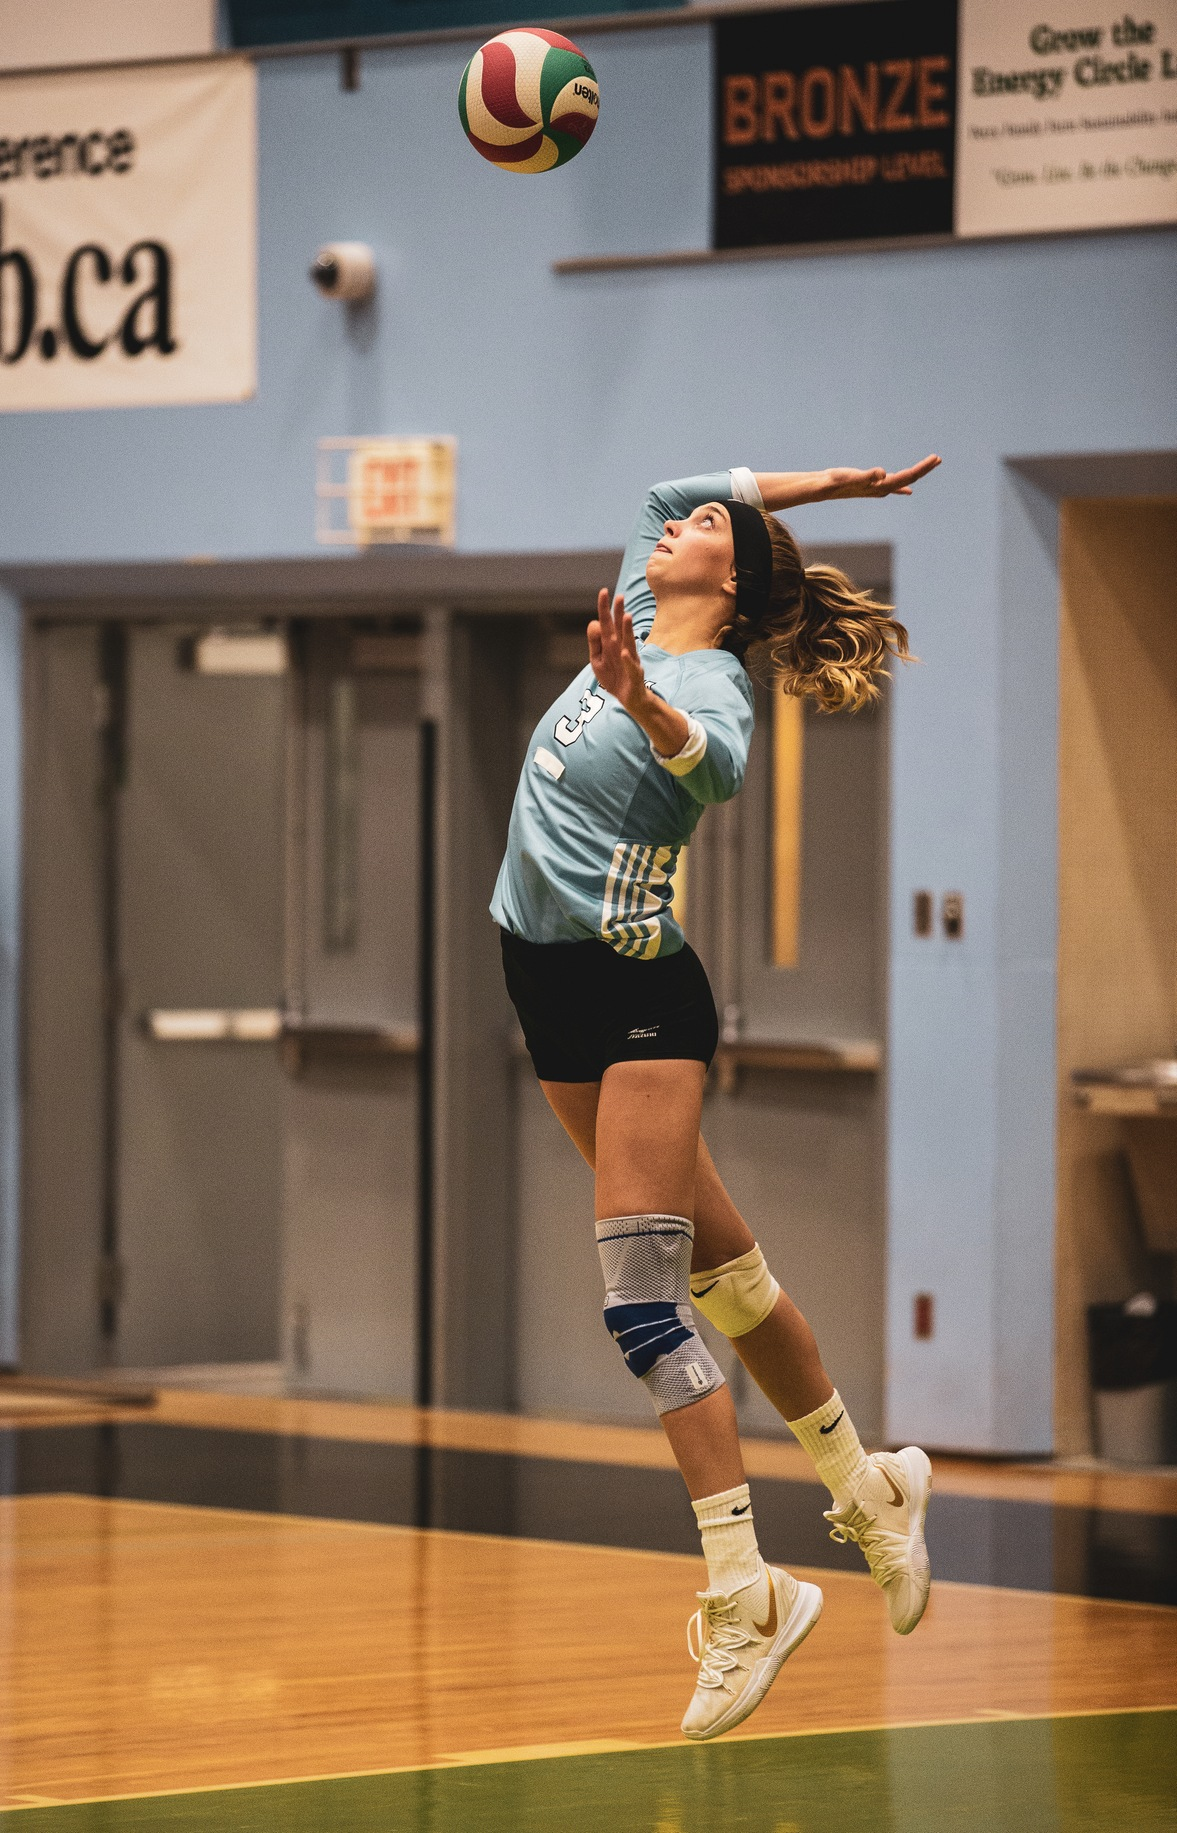 WVB | Kodiaks Fall to Lions on the Last Home Game of 2019